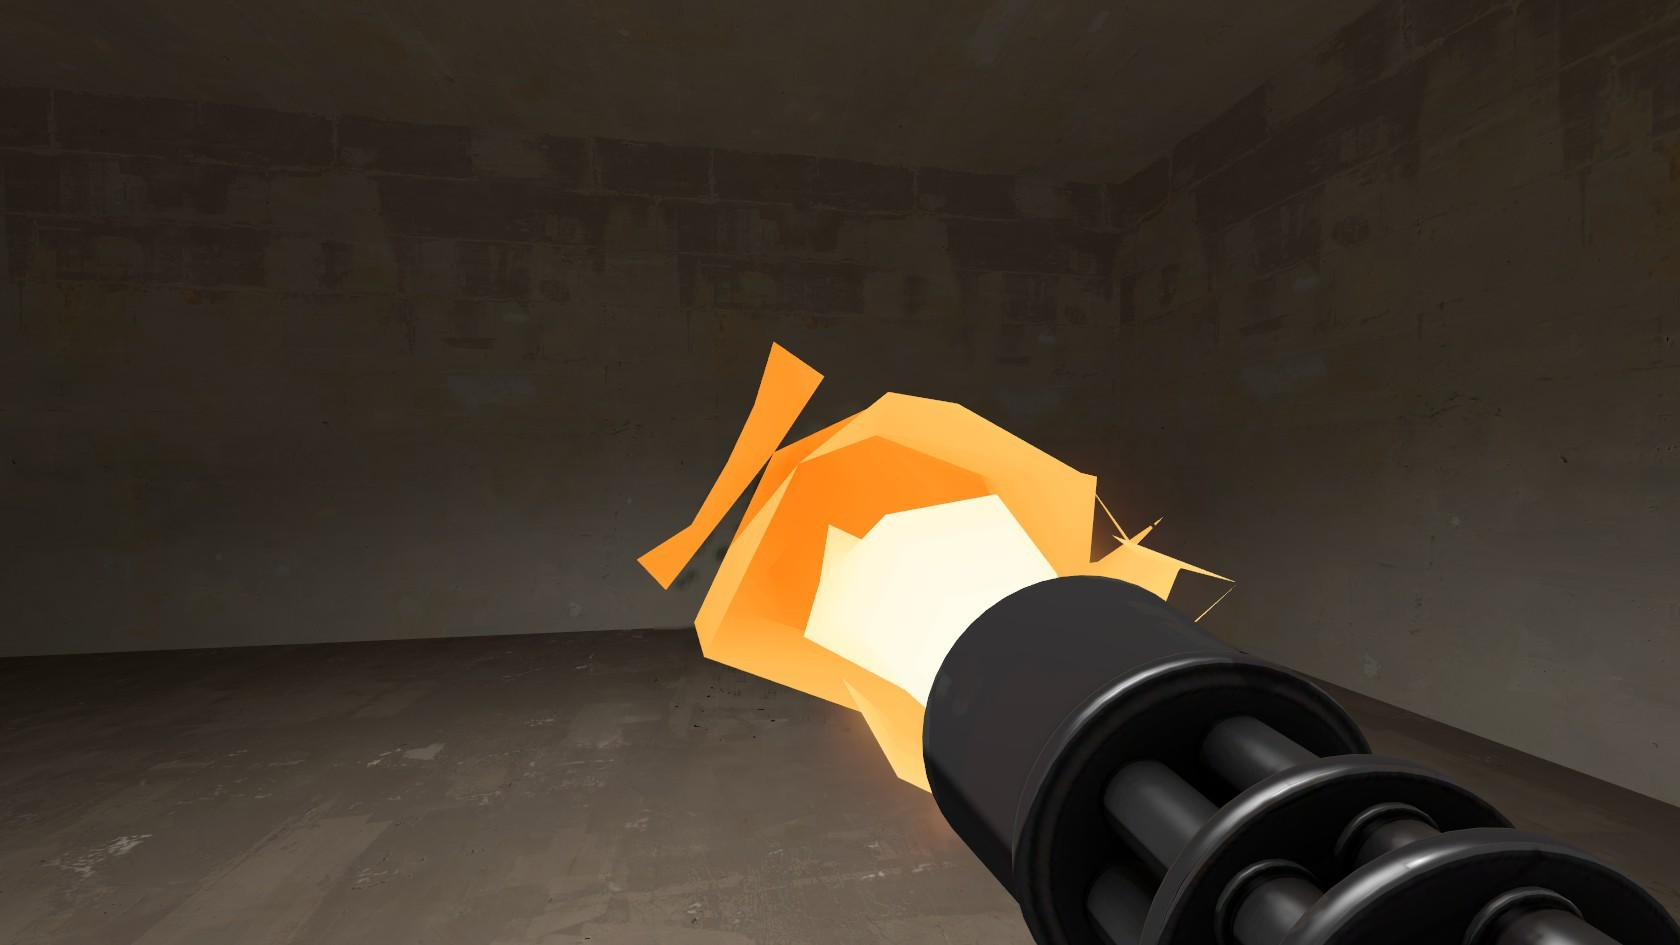 Tf2 Beta minigun muzzleflash restoration WiP screenshot #4